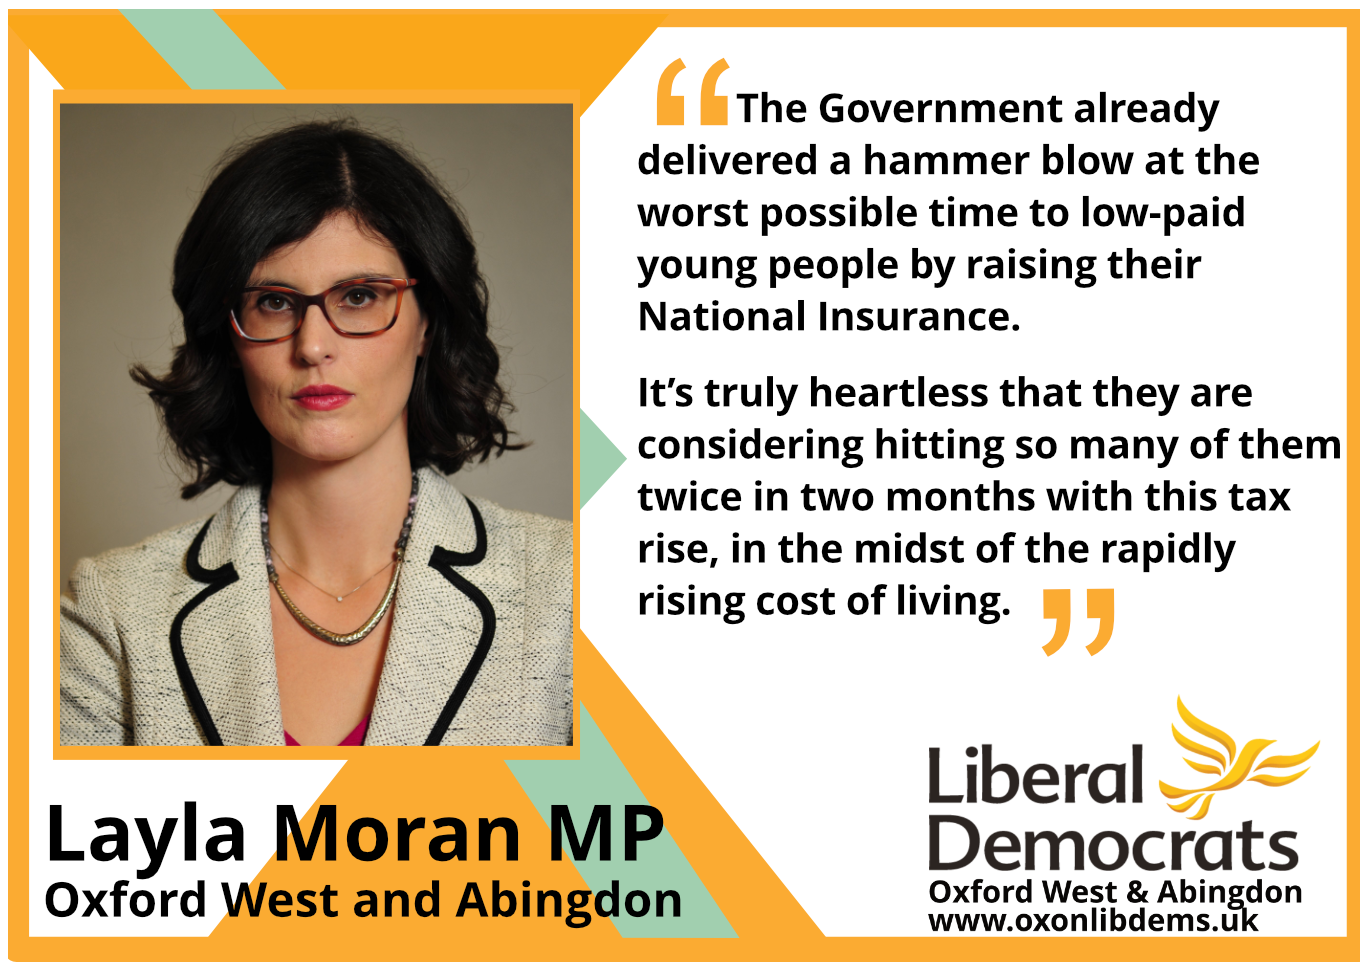 key_The Government already delivered a hammer blow at the worst possible time to low-paid young people by raising their National Insurance. It's truly heartless that they are considering hitting so many of them twice in two months with this tax rise, in the midst of the rapidly rising cost of living